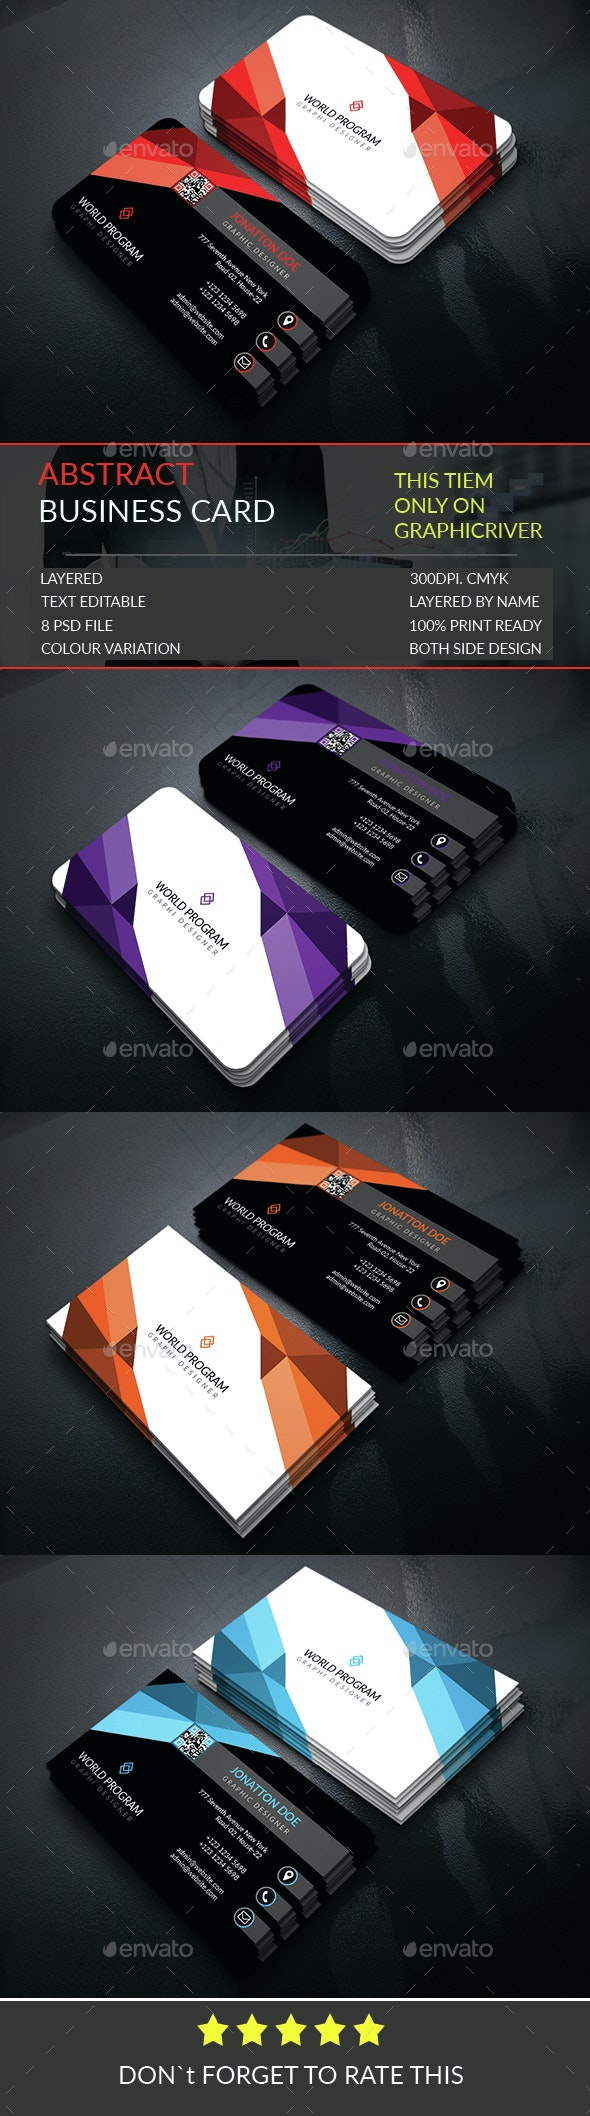 Abstract Business Card Template - Business Cards Print Templates